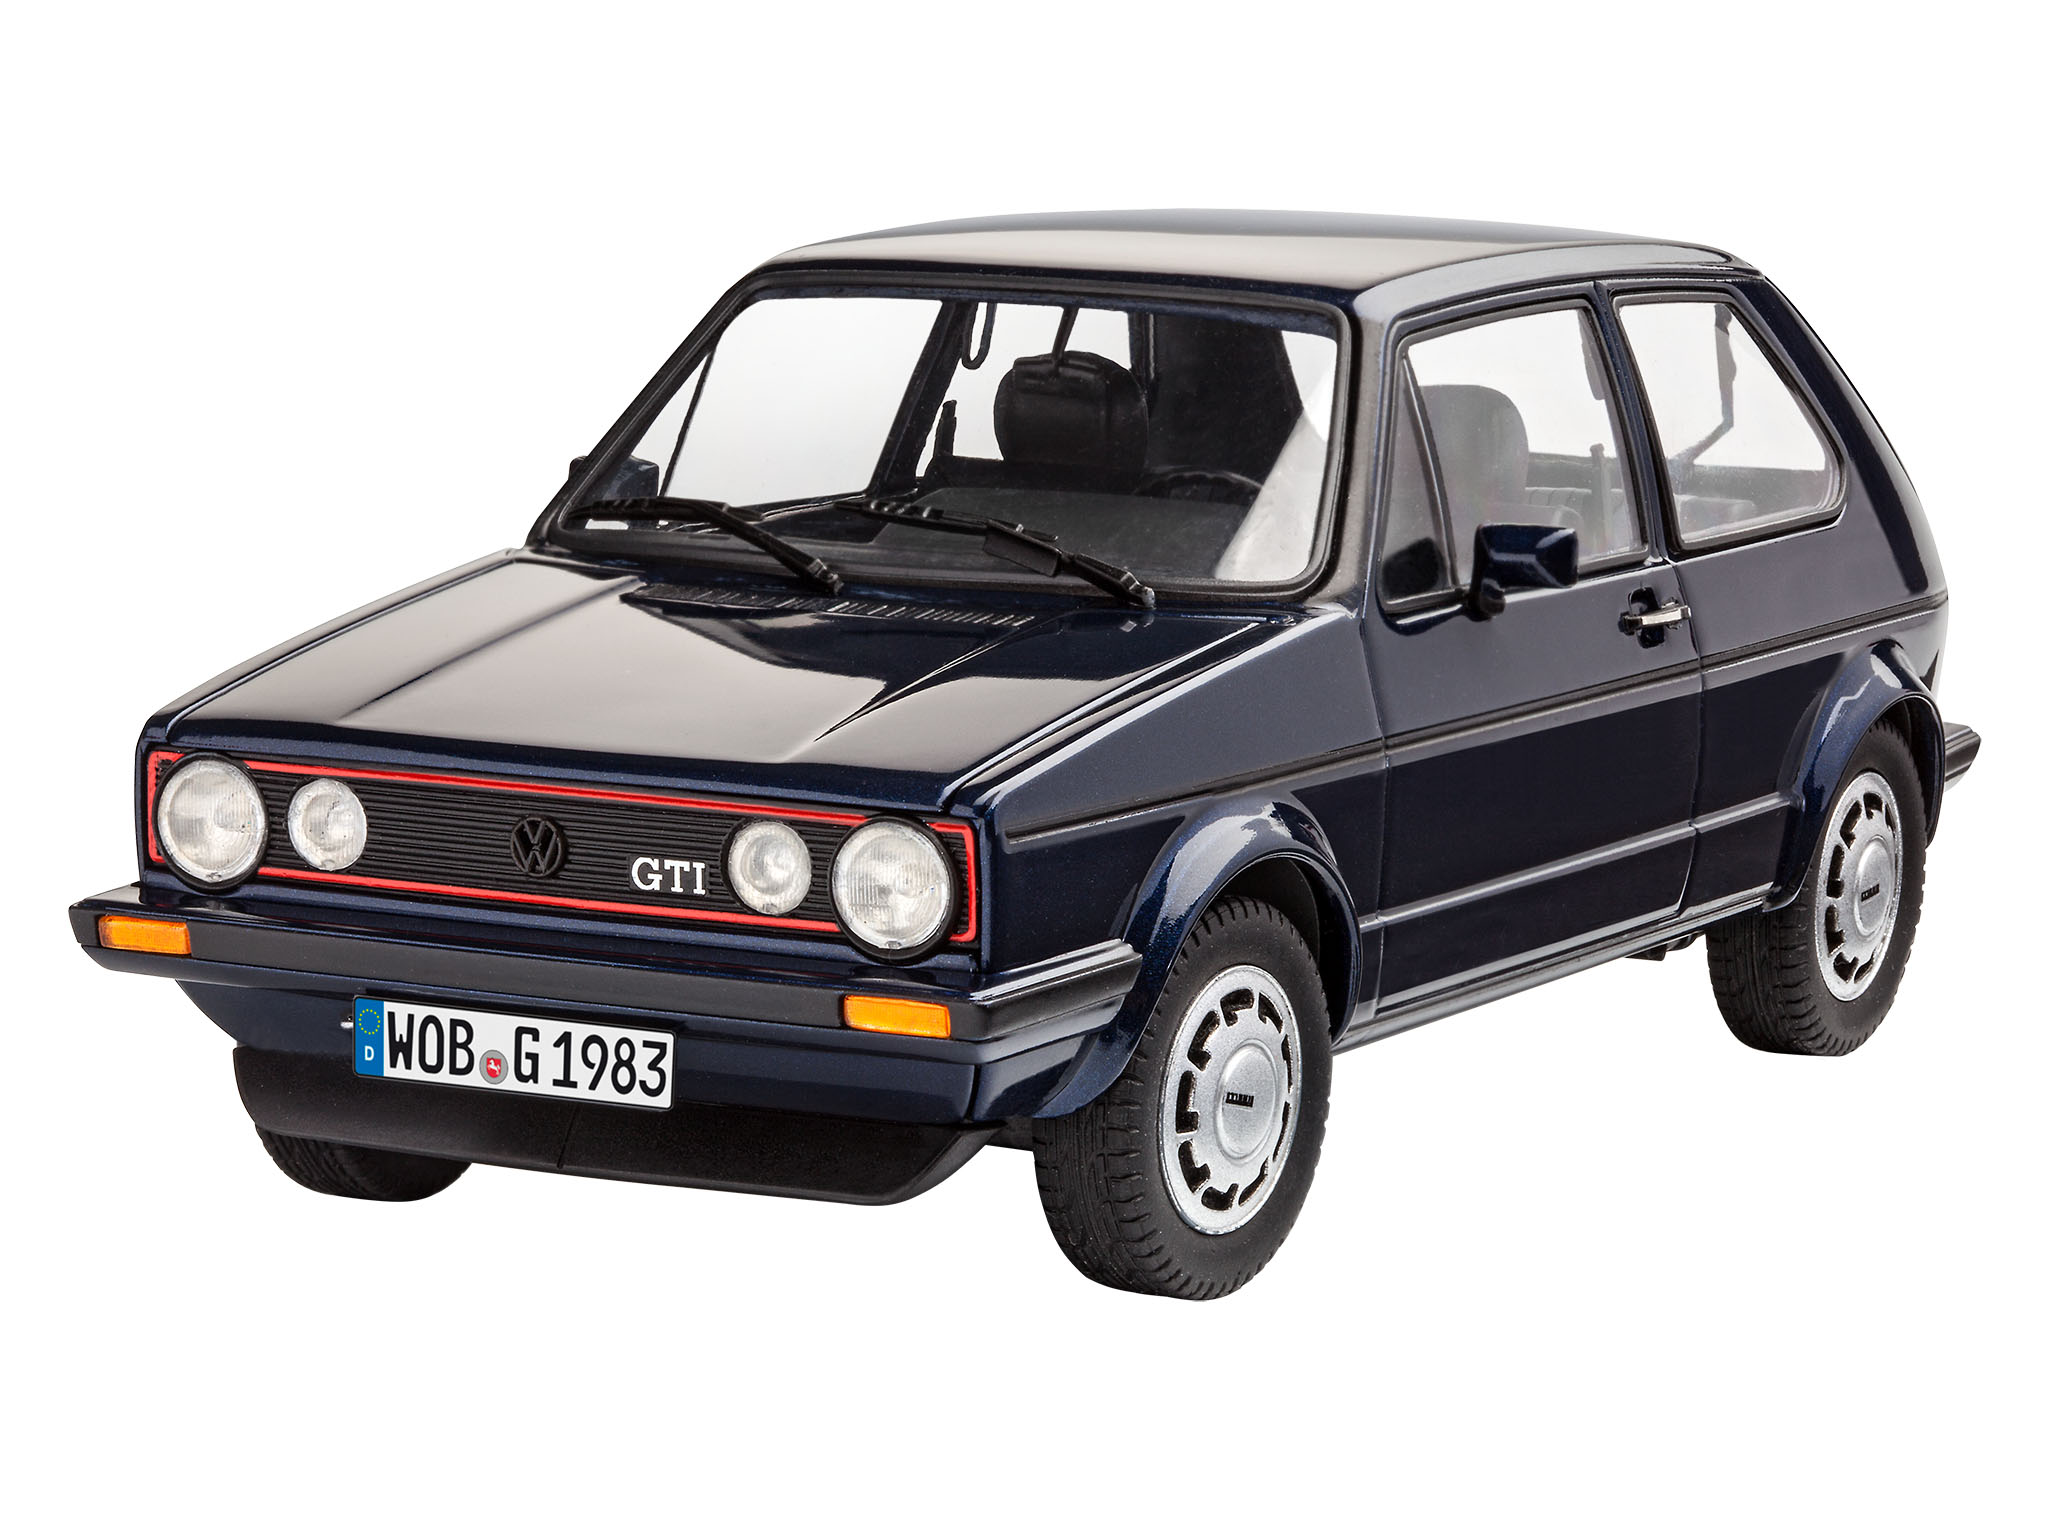 revell 35 years vw golf 1 gti pirelli. Black Bedroom Furniture Sets. Home Design Ideas